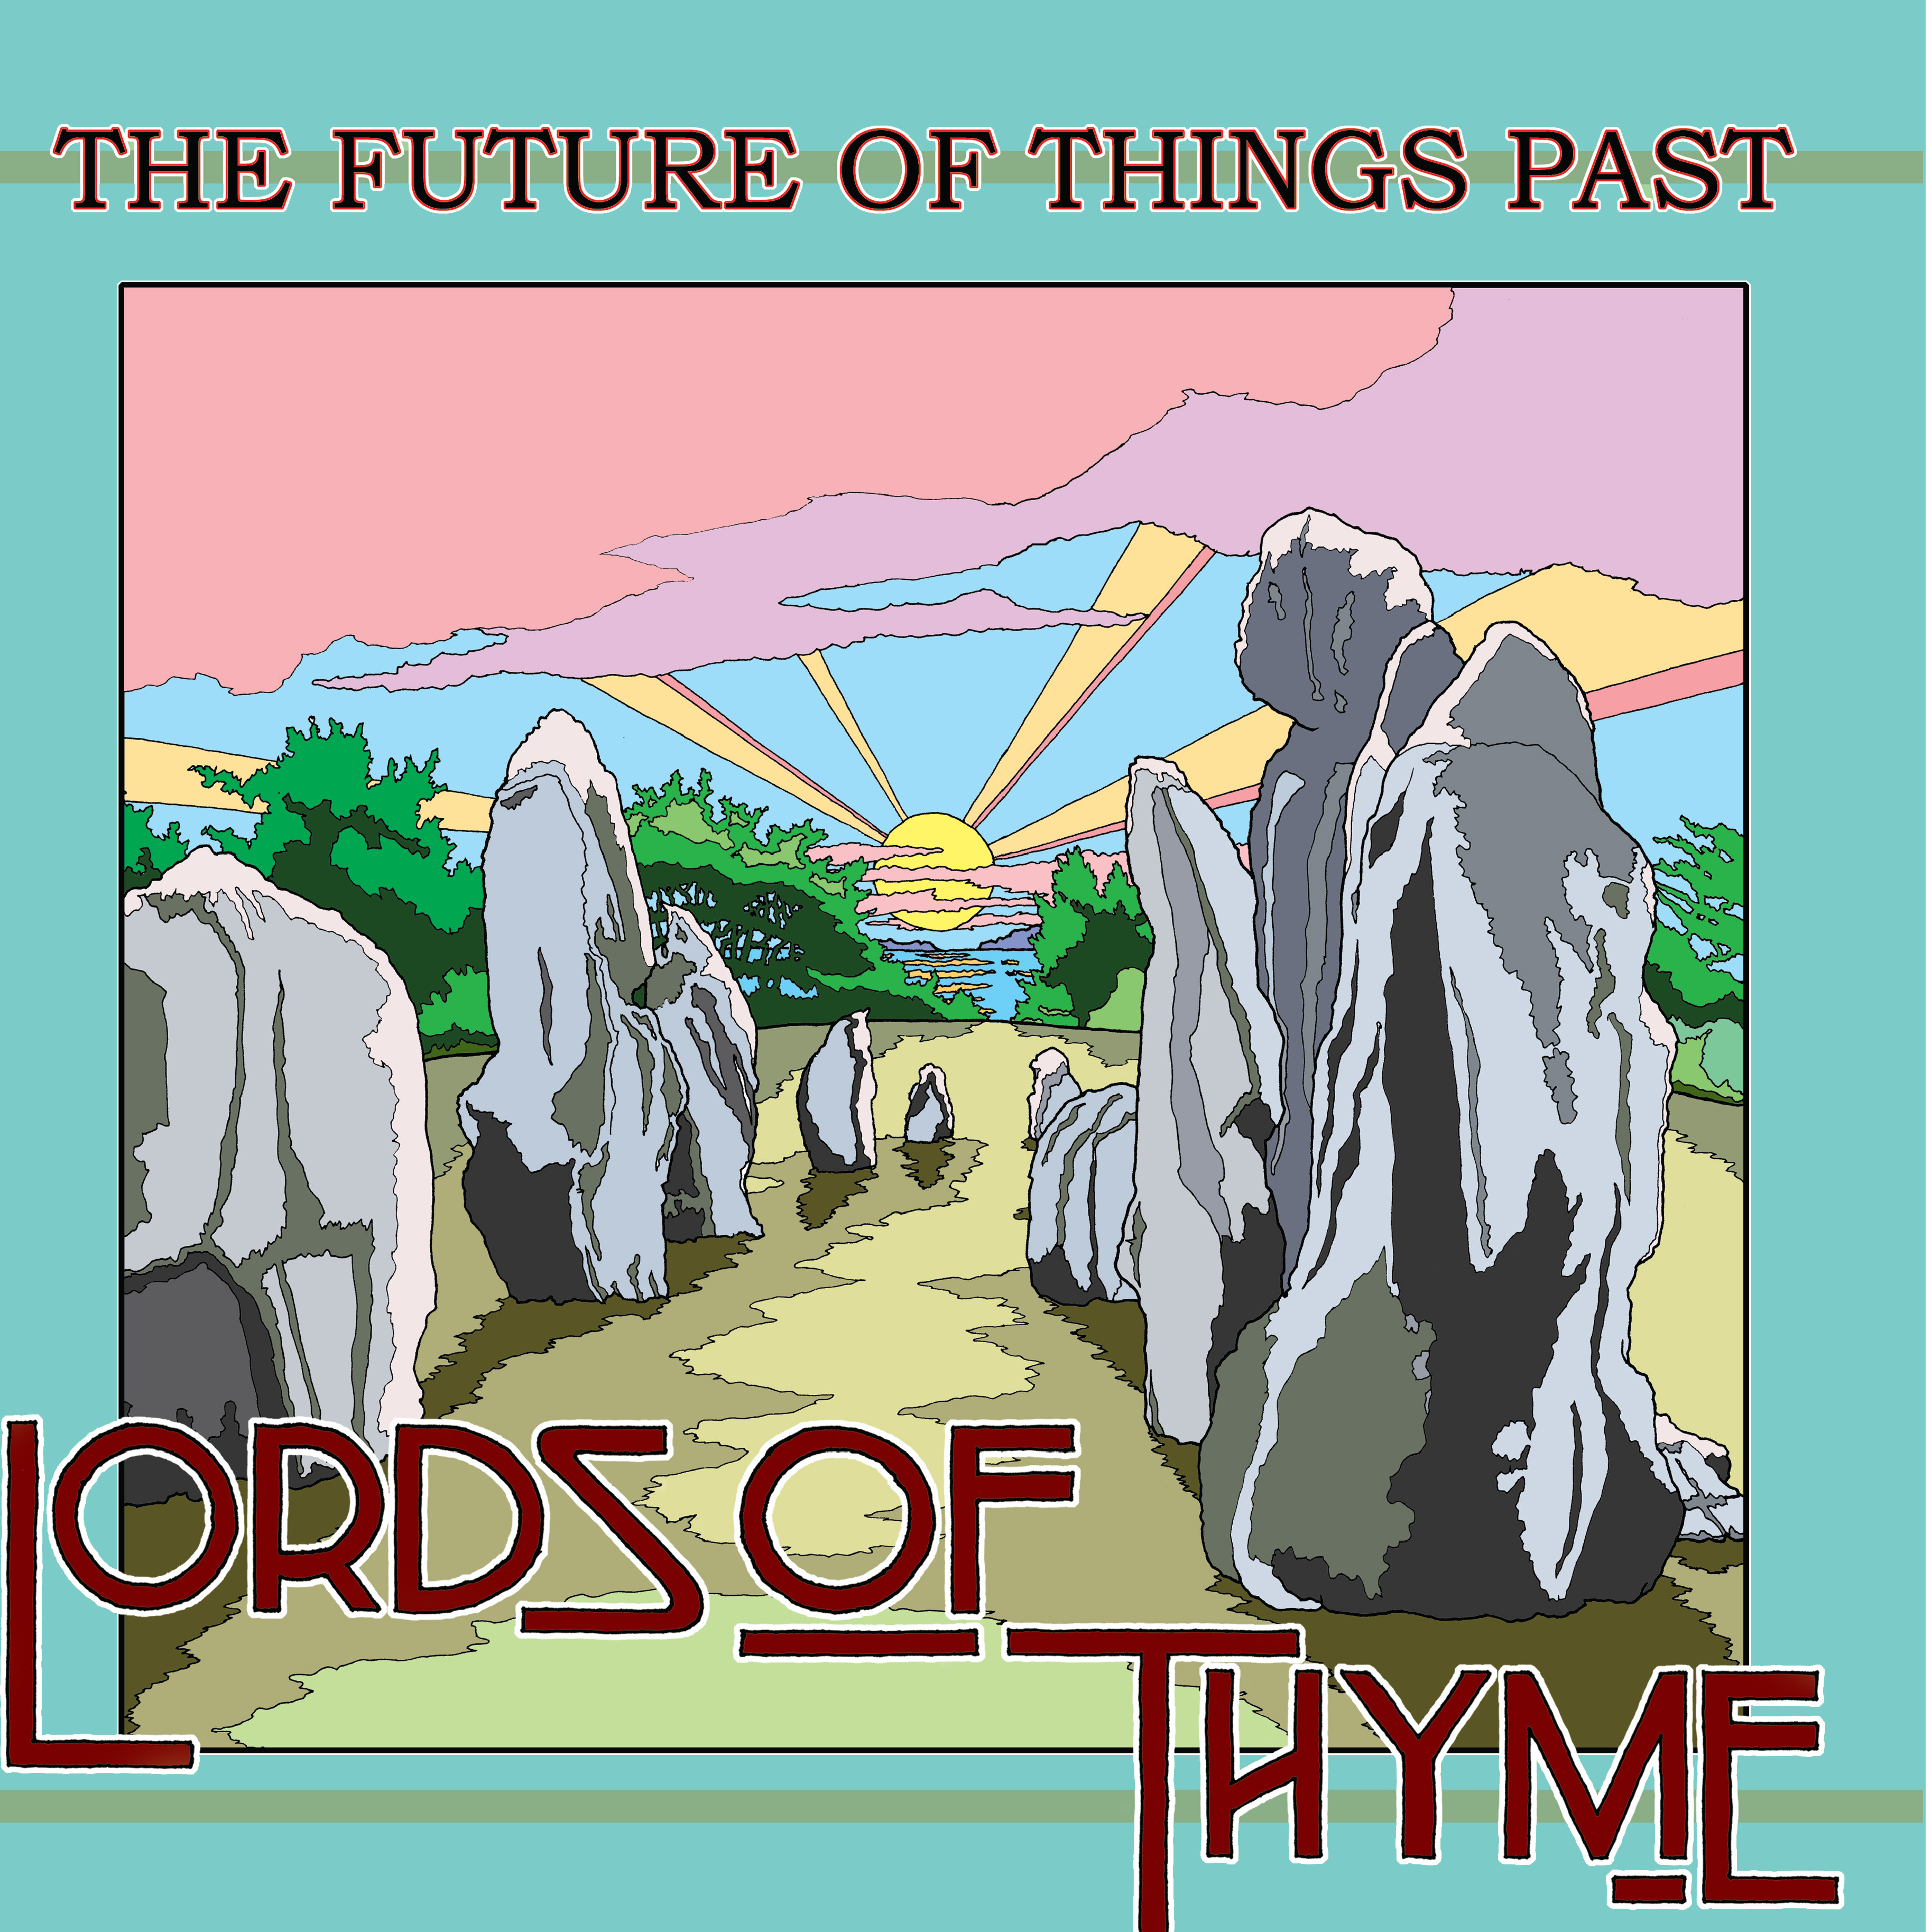 THE FUTURE OF THINGS PAST - LORDS OF THYME